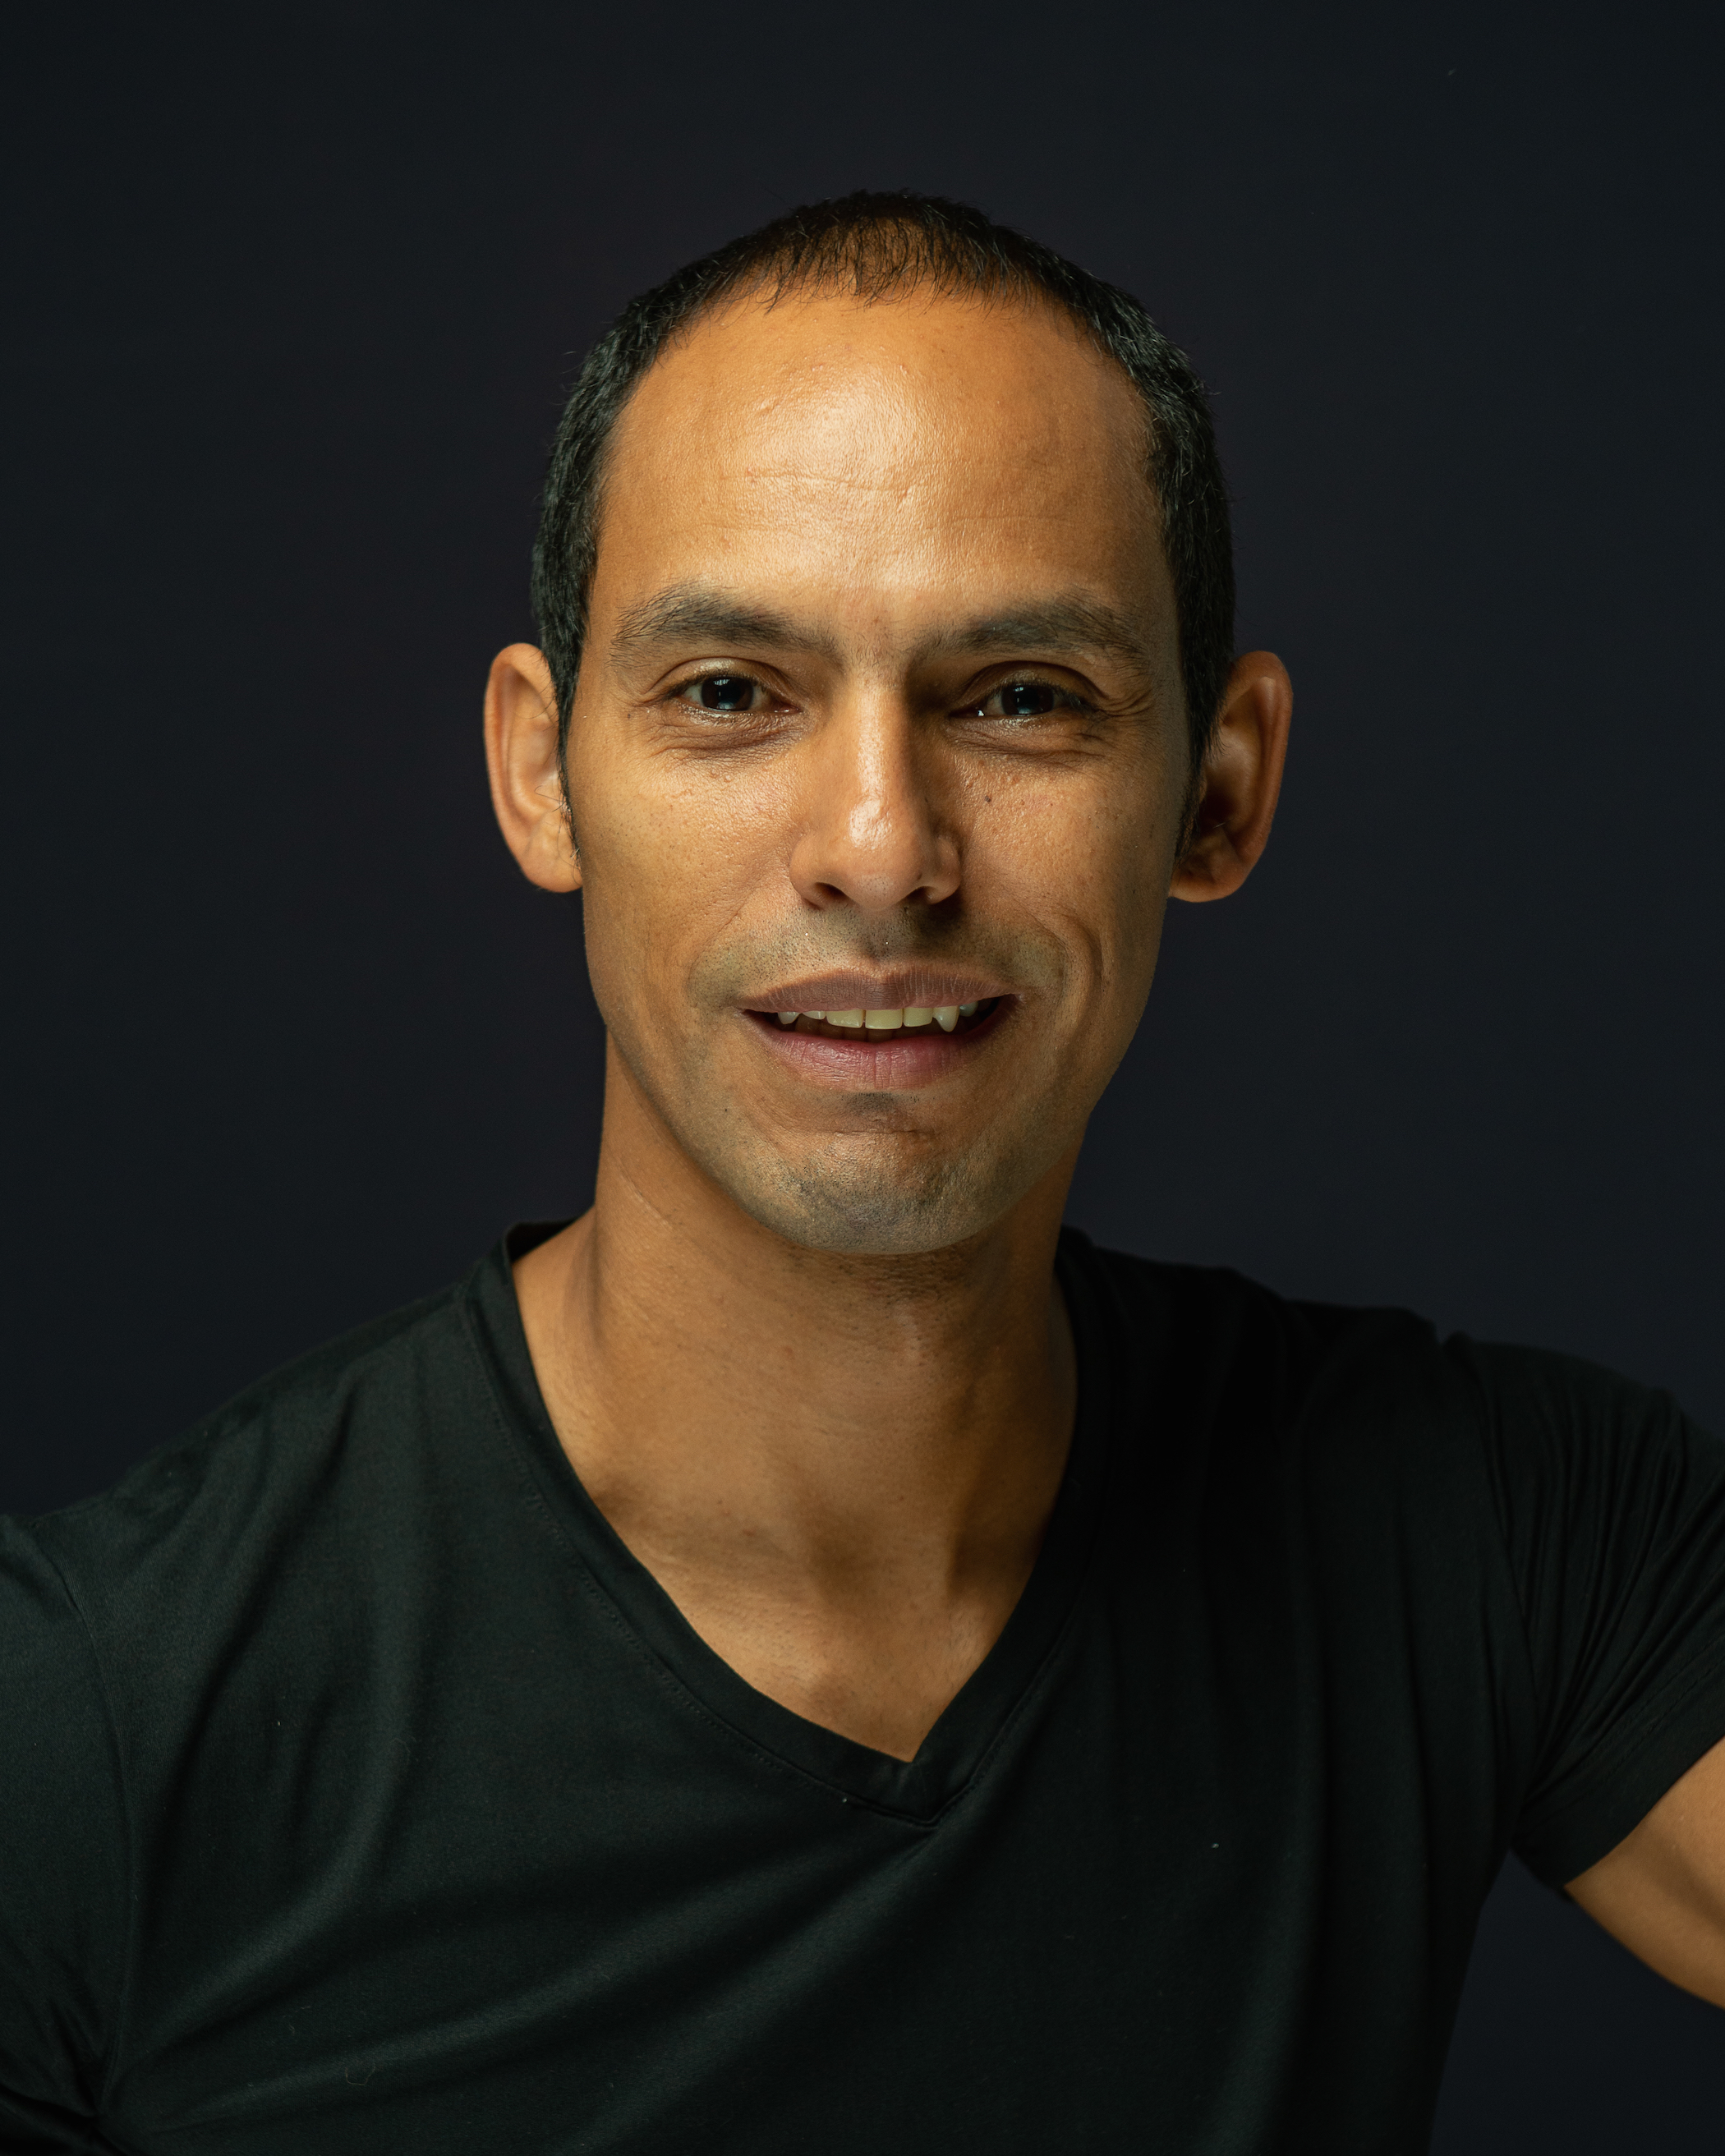 Jose Edwin Gonzalez Amaya   was born in Cali, Colombia, where he started his ballet studies at the age of eight at INCOLBALLET under the direction of Gloria Castro. Upon graduating, he danced with Ballet de Cali, performing both classical and modern repertoire. In 2002, he joined the Ballet Contemporaneo de Caracas in Venezuela; he danced the principal roles in Le Corsaire, Don Quixote, The Nutcracker, Midsummer Night's Dream, Carmina Burana, Carmen, and others. In 2005 he was principal dancer with Ballet Teresa Carreno in Don Quixote. Later he joined Tulsa Ballet, where he danced in Val Caniparoli's Lambarena, Sleeping Beauty, The Nutcracker, La Sylphide, and Western Symphony. In 2009, he joined State Street Ballet as a principal dancer, dancing lead roles in Cinderella, The Nutcracker, Love Love, A Midsummer Night's Dream and The Jungle Book. In 2011, he joined the cast of Neos Dance Theatre. Mr. Gonzalez dance with Charleston Ballet Theatre in 2012, performing Balanchine's Allegro Brilliante and Who Cares?, The Firebird, The Nutcracker, Cinderella and Dracula. He also danced with Island Moving Company in Newport, Rhode Island. In 2014, Mr. Gonzalez joined Ballet San Antonio where he performed The Nutcracker, Balanchine's Donizetti Variations, and Gabriel Zertuche's Dracula, Arvo, Butterflying, and Ben Stevenson's Romeo and Juliet and Swan Lake. Mr. Gonzalez has worked with major choreographers and teacher such as Nina Novak, Maria Eugenia Barrios, Rumen Ivanov Rashev, Oscar Araiz, Jimmy Gamonet, Juan Carlos Penuela, Christopher Fleming, Rodney Gustafson, William Soleau, Jill Enthrone Bahr, Philip Neal, and Dominic Walsh.